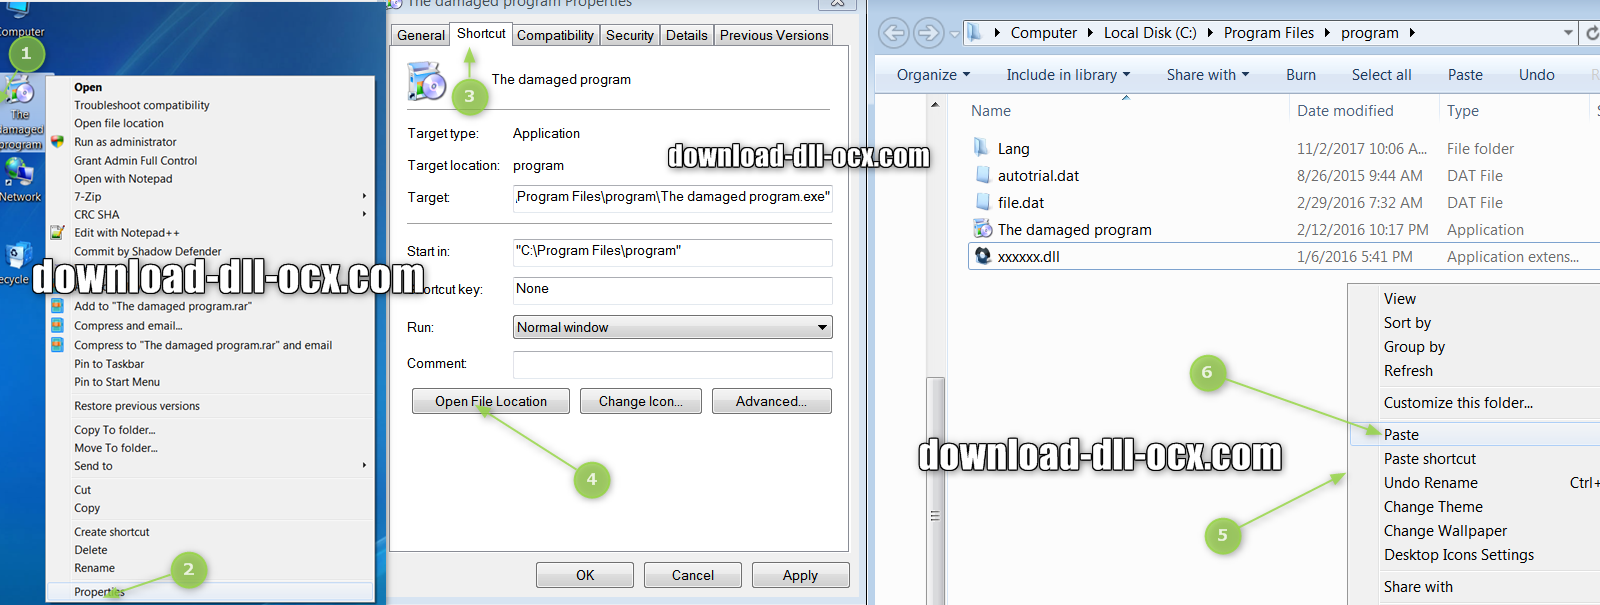 how to install AuApplication.dll file? for fix missing